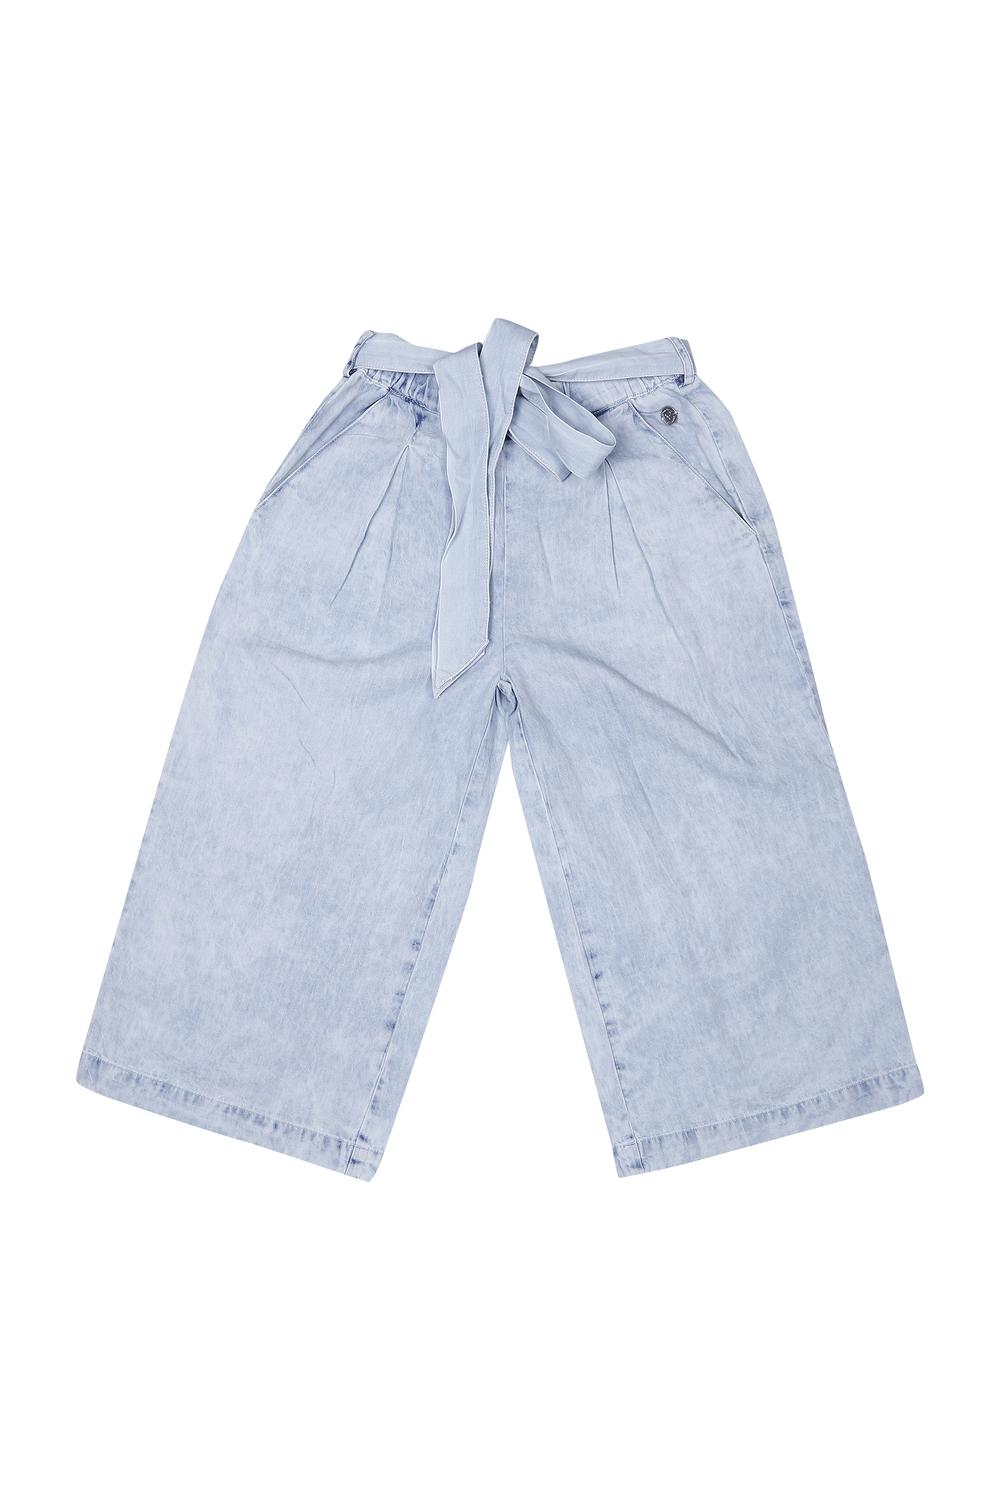 8757af52 Allen Solly Junior Bottoms & Leggings, Allen Solly Blue Trousers for Girls  at Allensolly.com